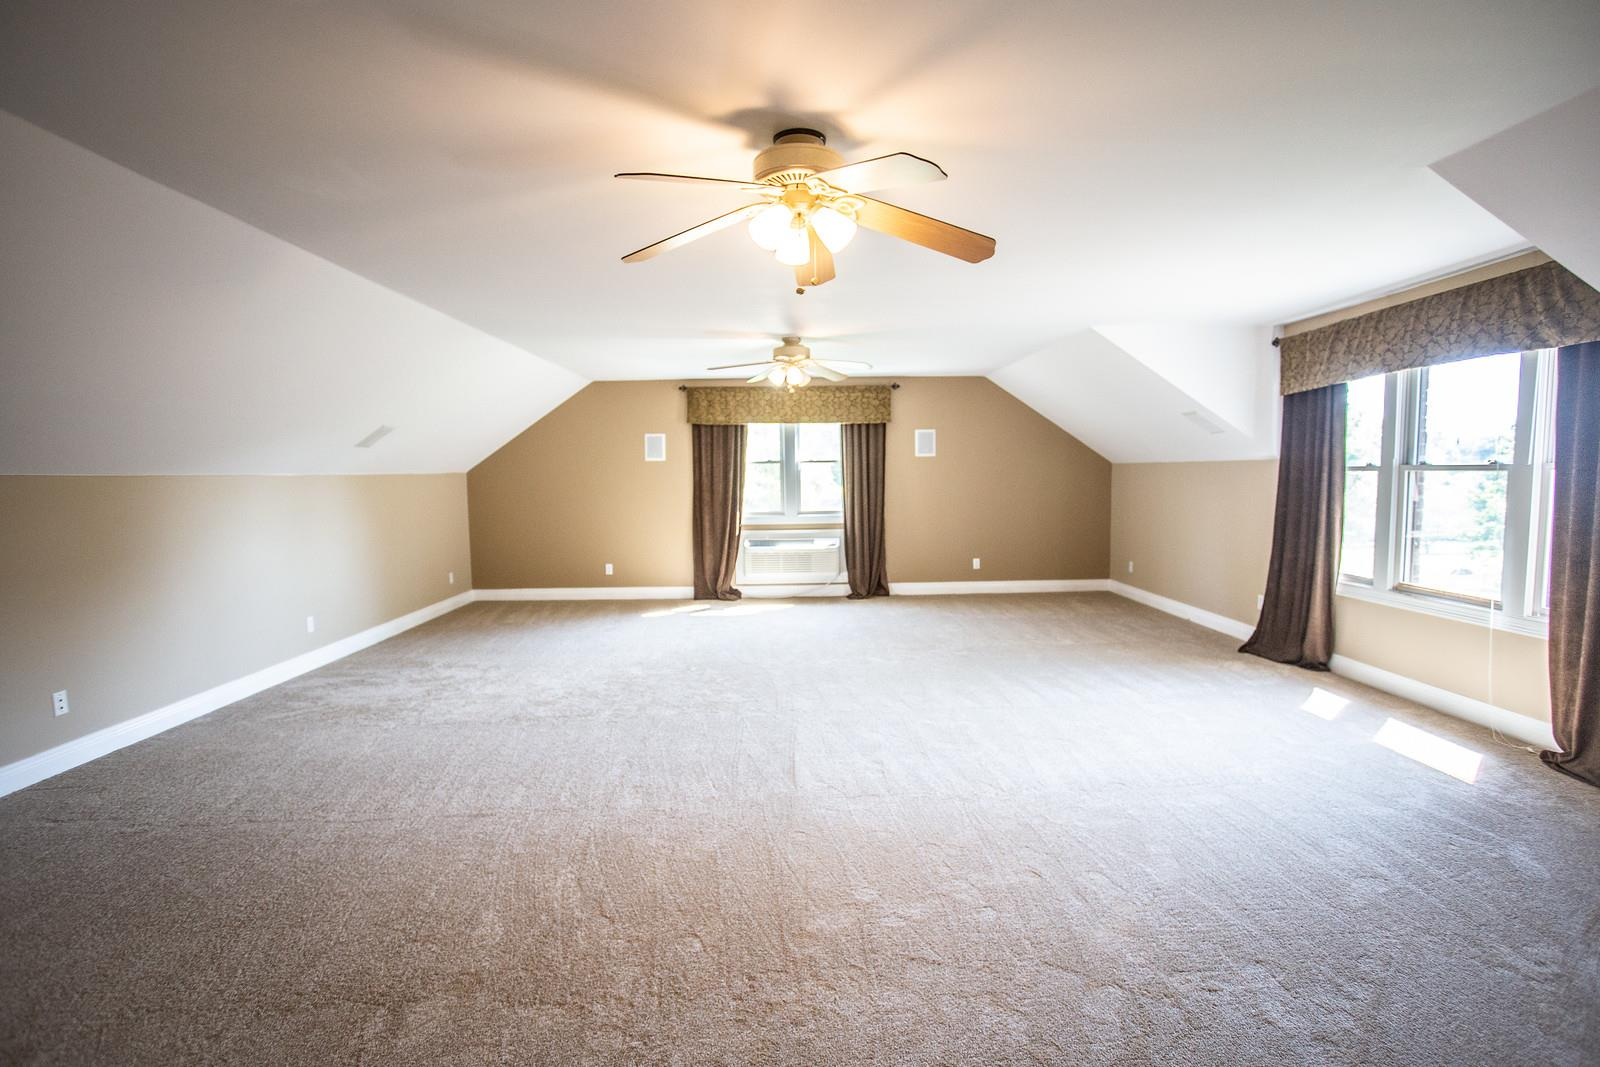 $795,000 - 3Br/3Ba -  for Sale in Benton Harbor 1, Mount Juliet